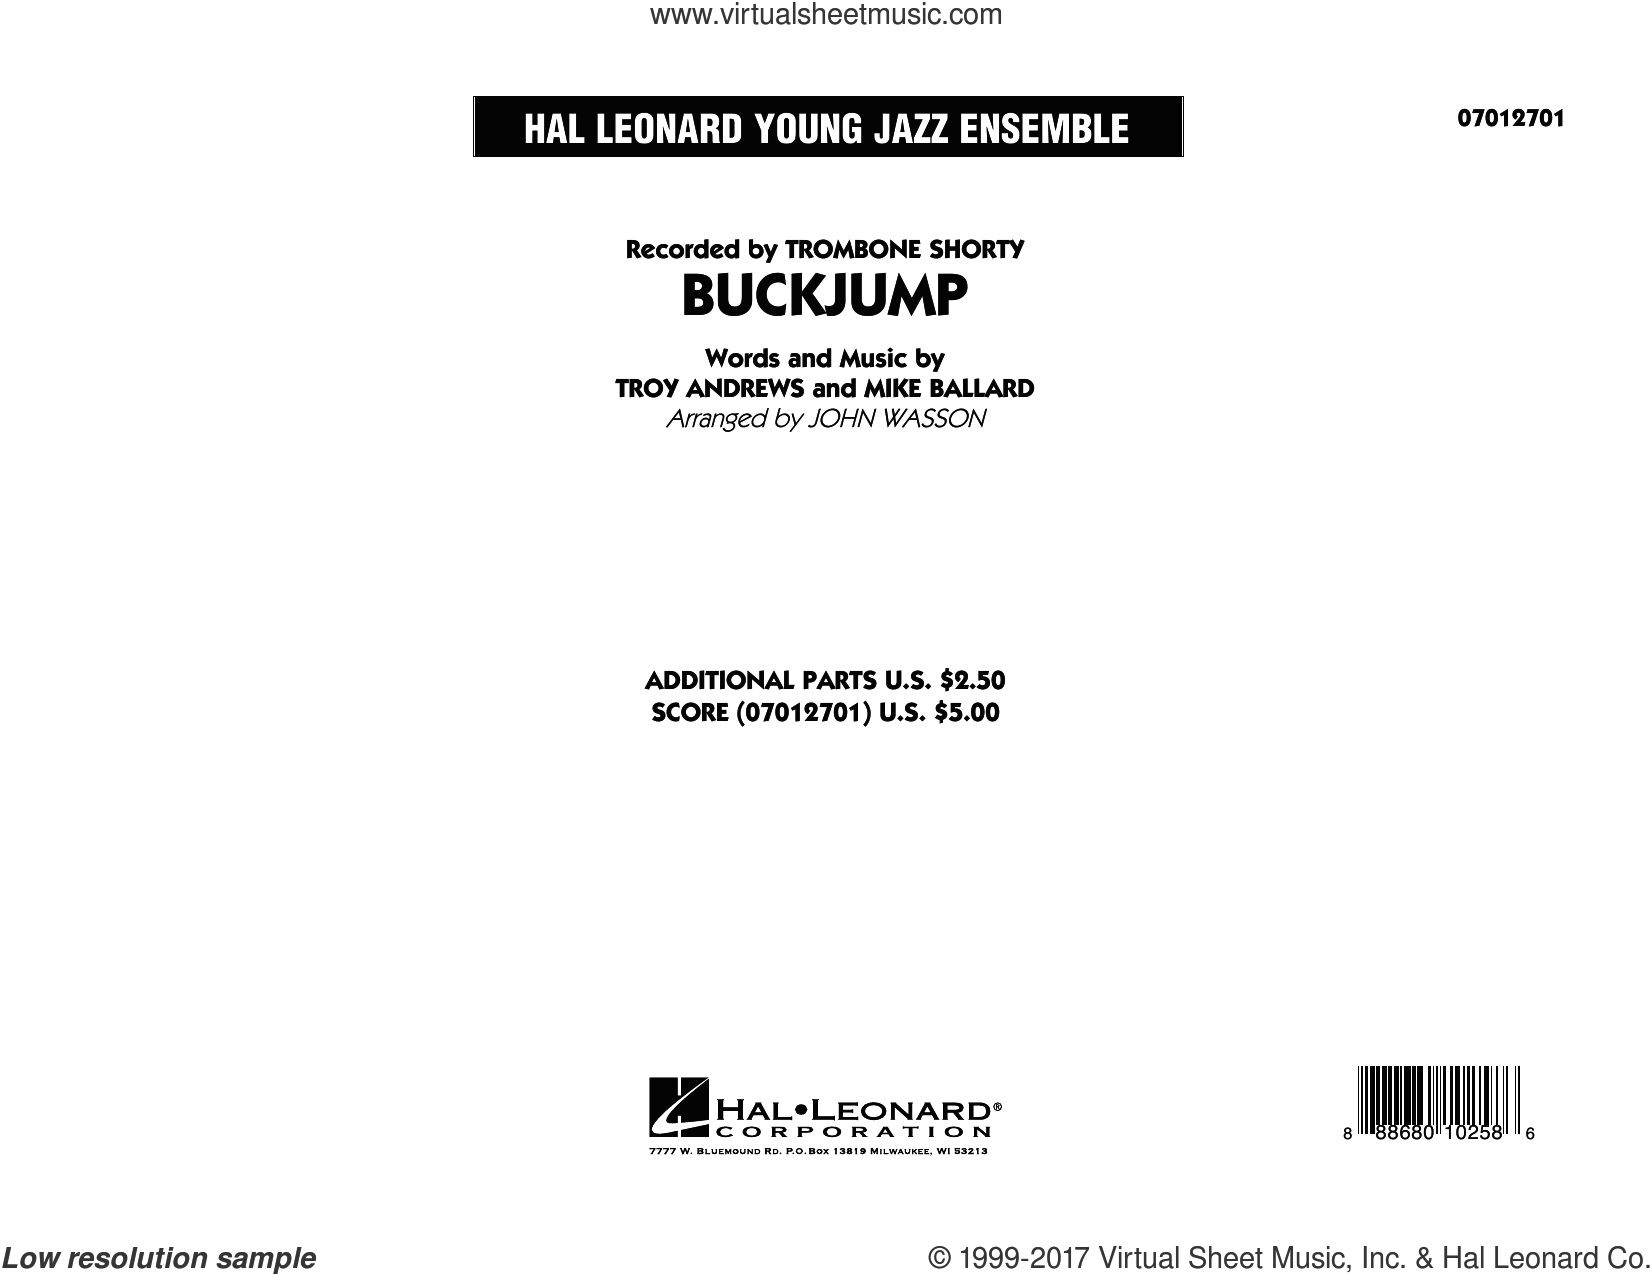 Buckjump (COMPLETE) sheet music for jazz band by John Wasson, Mike Ballard, Trombone Shorty and Troy Andrews, intermediate